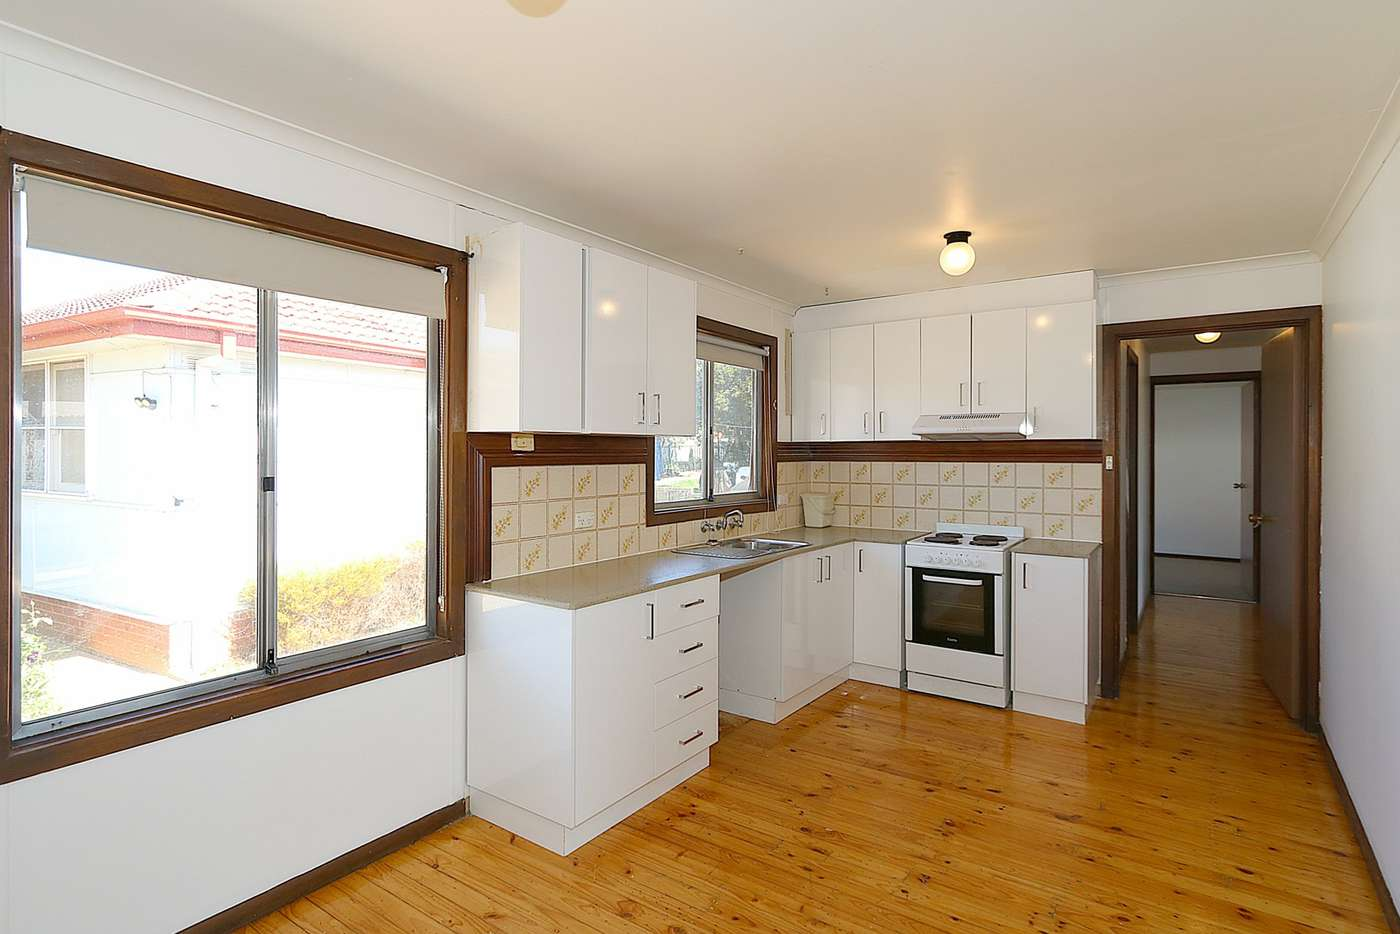 Fifth view of Homely house listing, 33 Buna Street, Ashmont NSW 2650